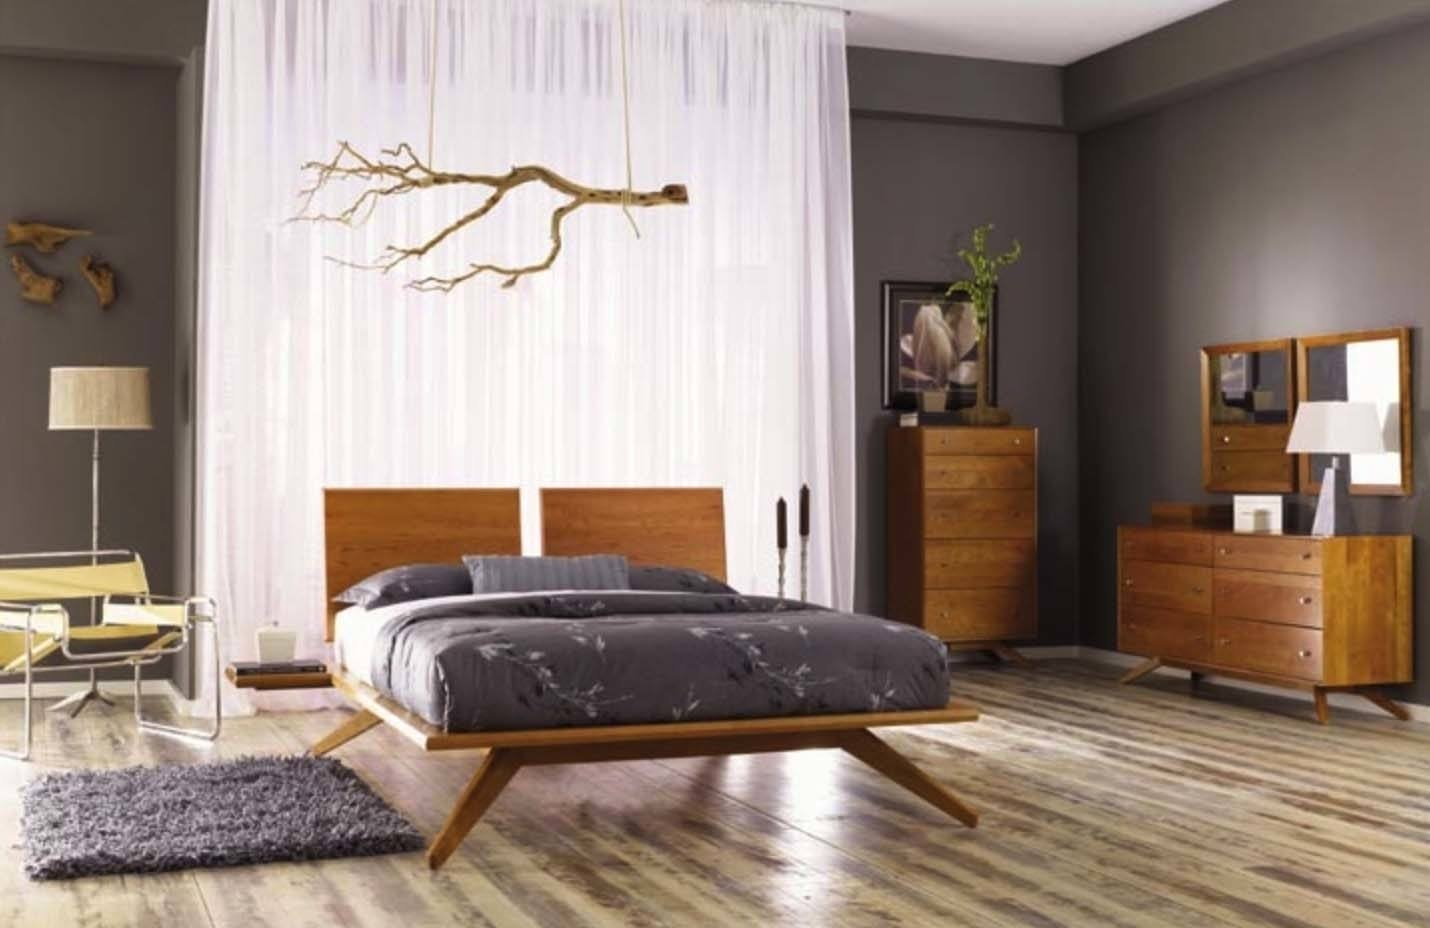 10 Fashionable Mid Century Modern Bedroom Ideas style of mid century bedroom nhfirefighters 2021